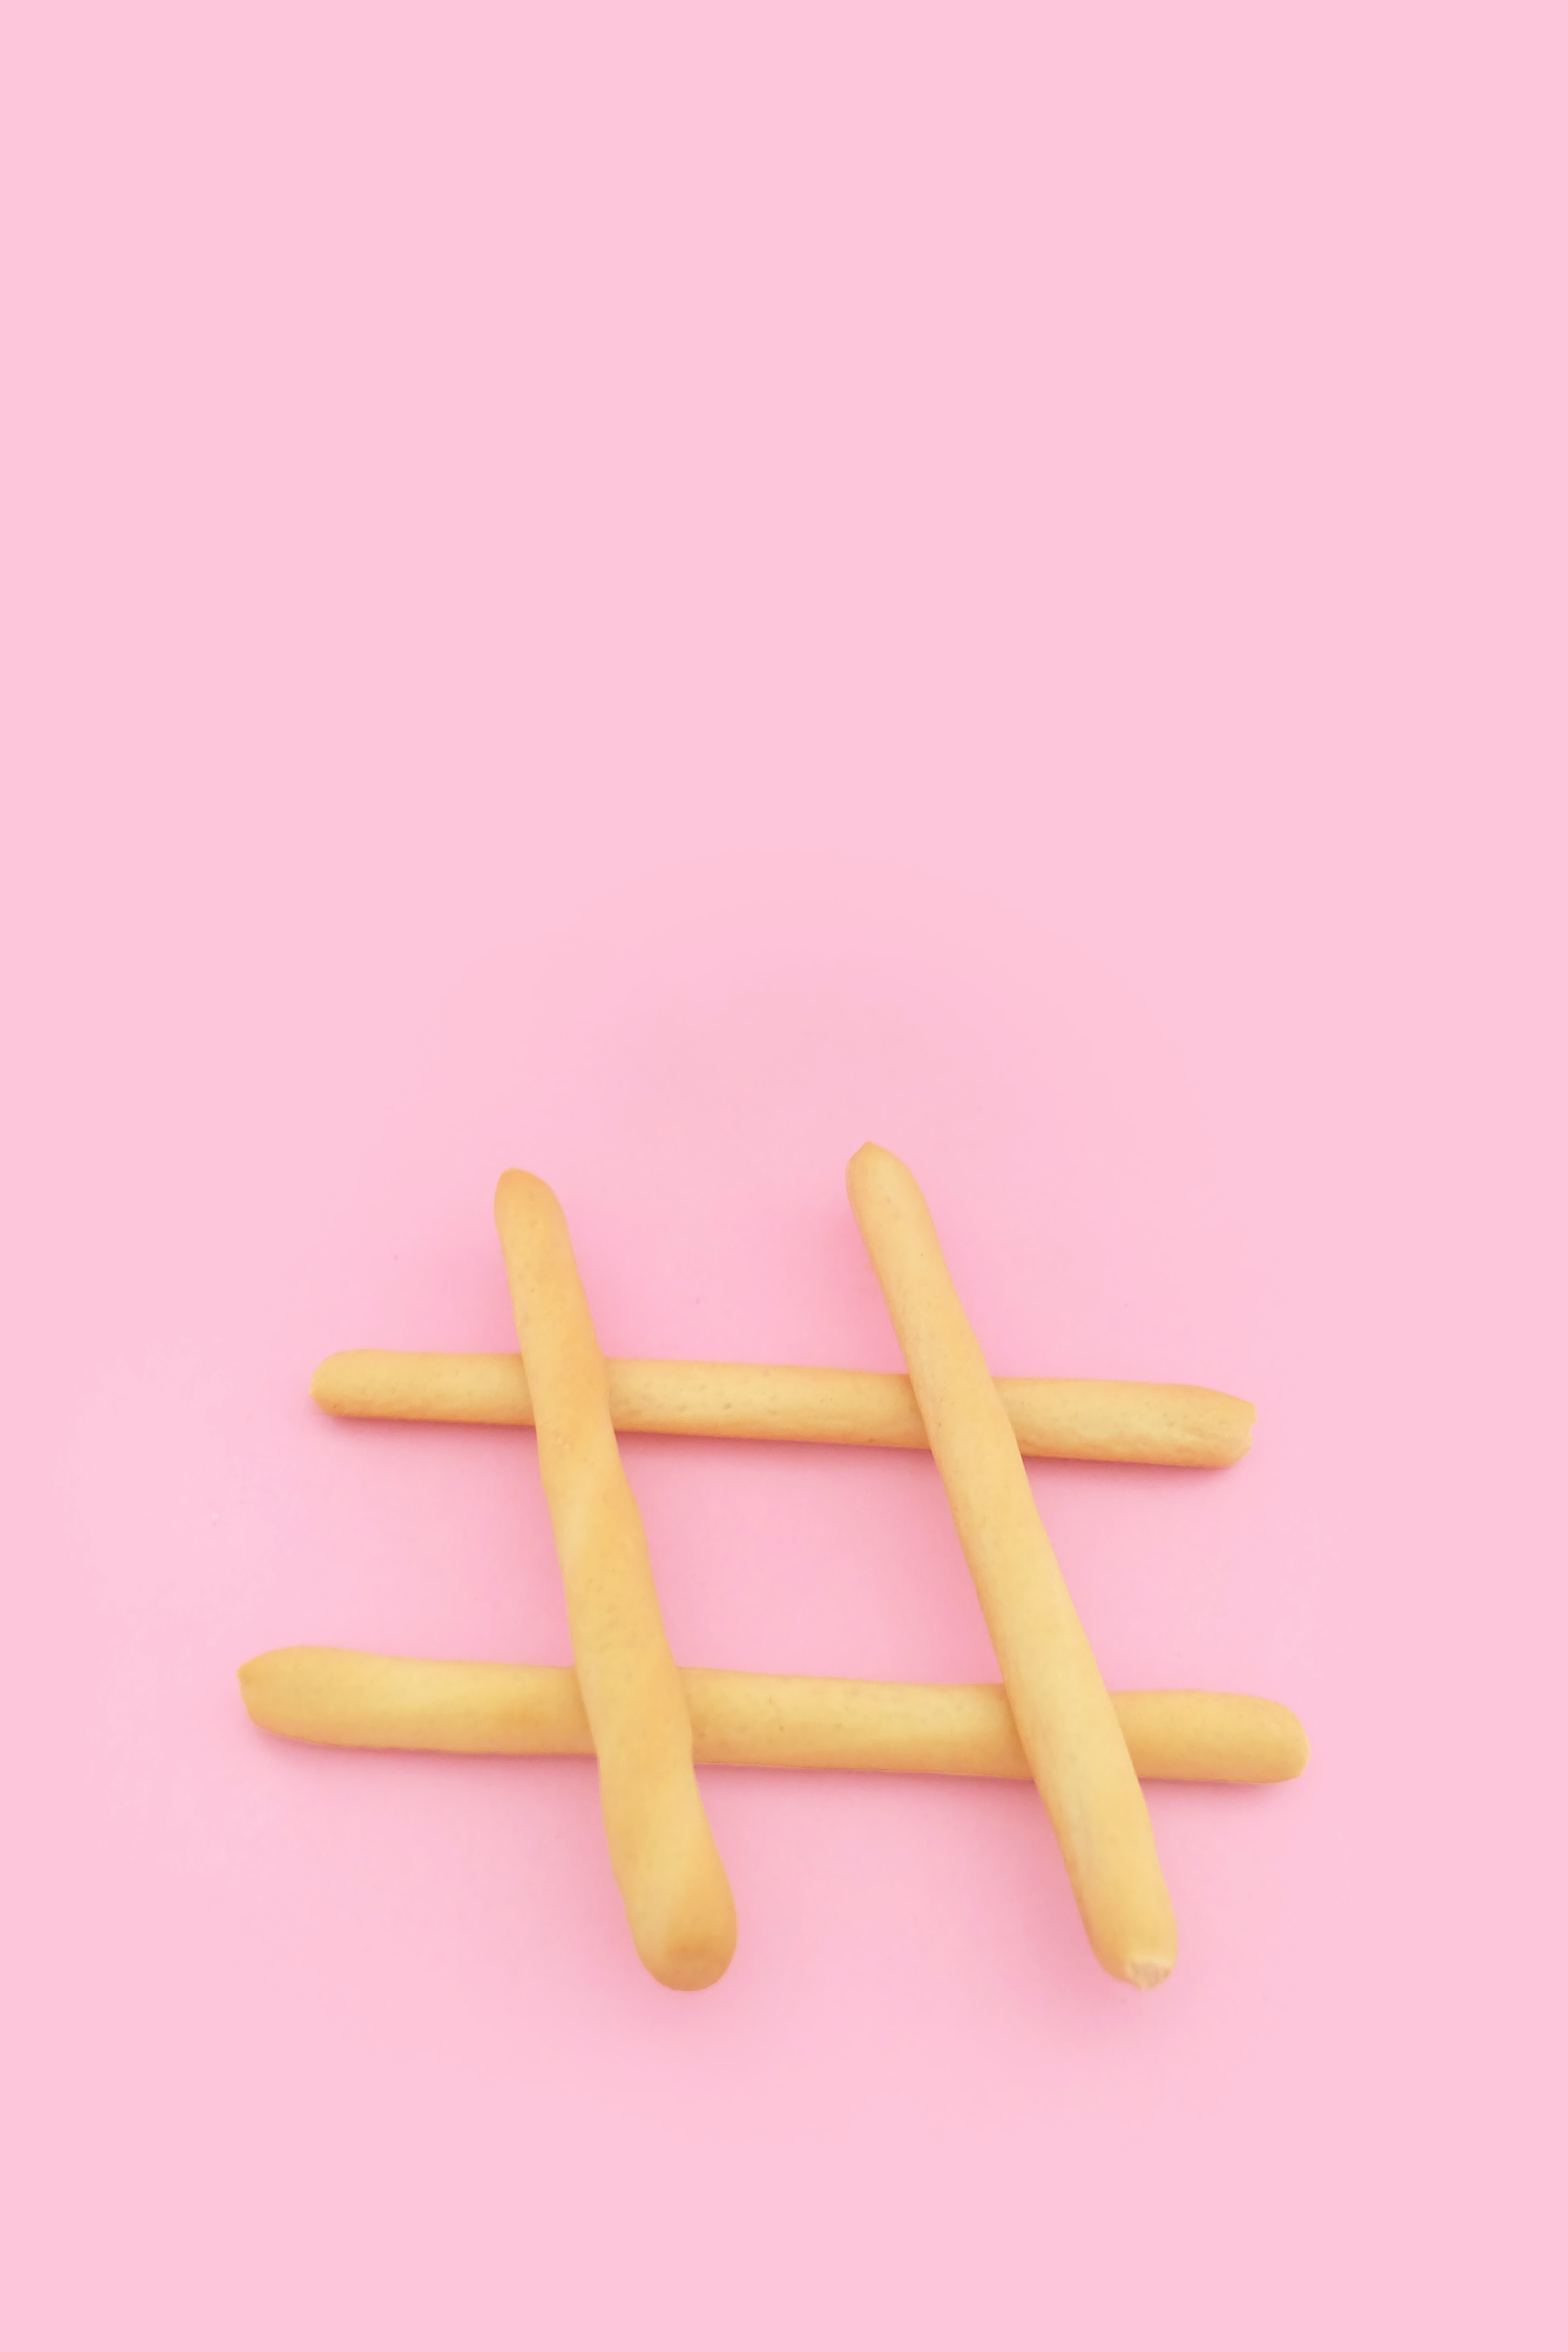 four brown wooden sticks on pink surface